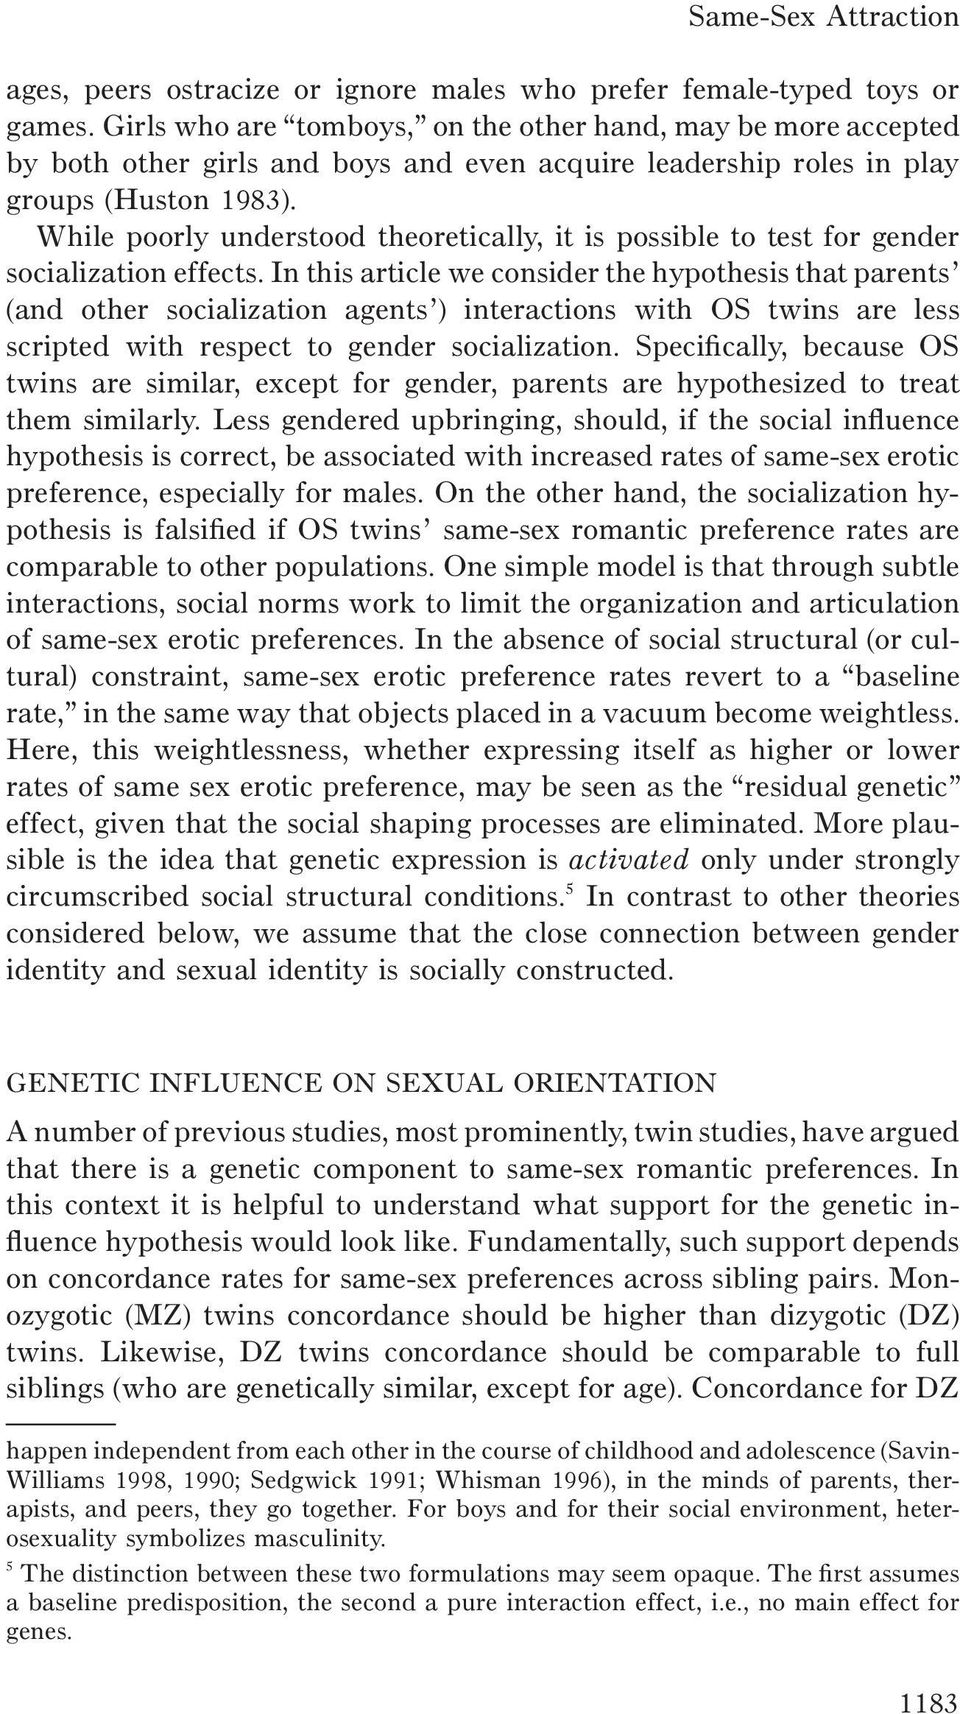 While poorly understood theoretically, it is possible to test for gender socialization effects.